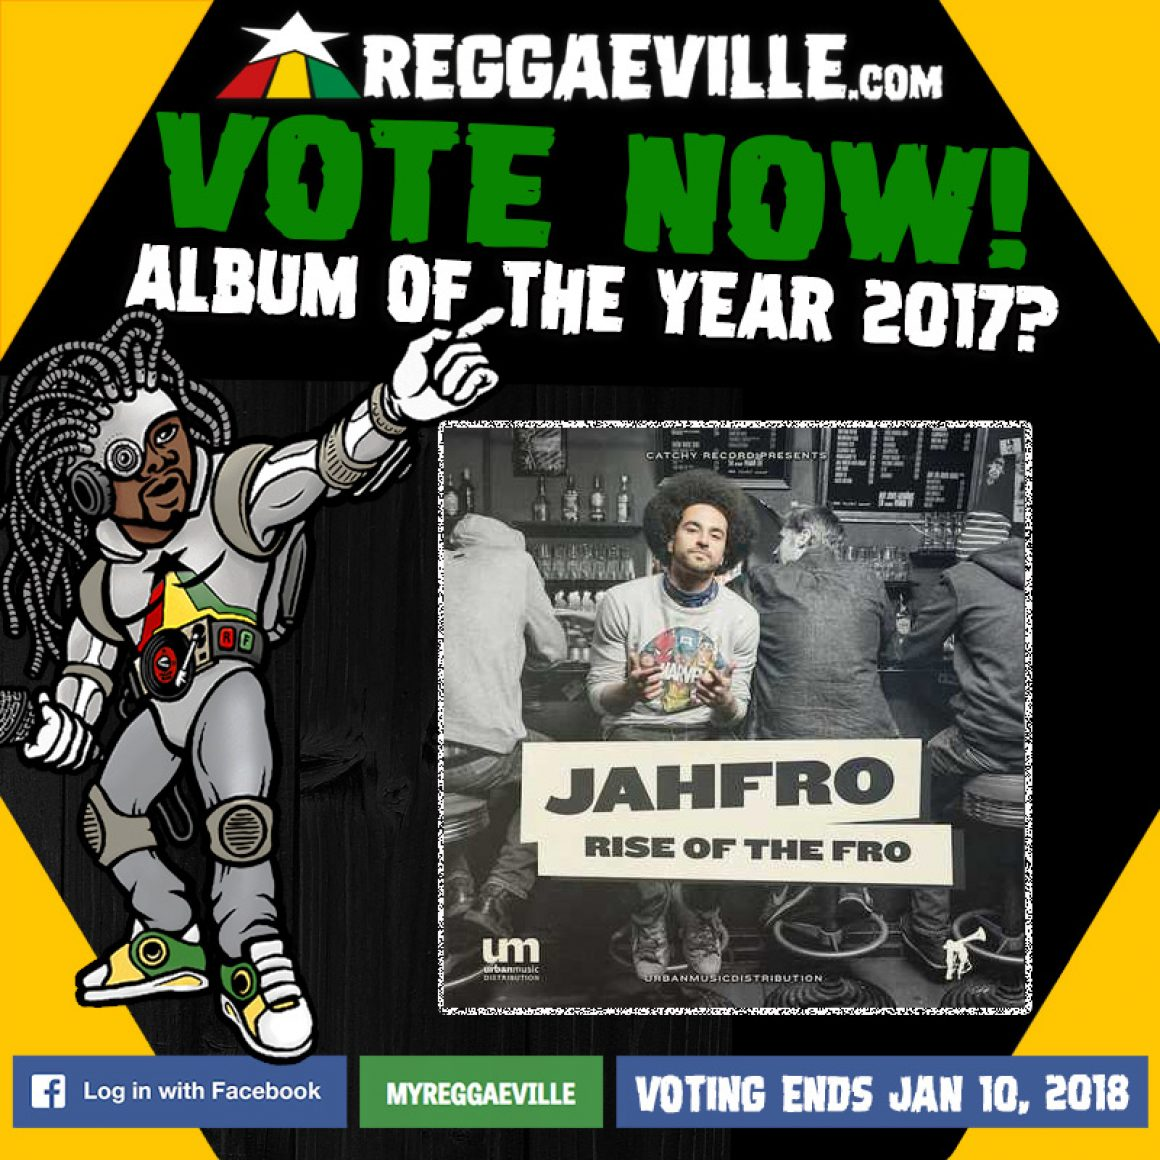 Vote for Jahfro – Rise Of The Fro on Reggaeville.com